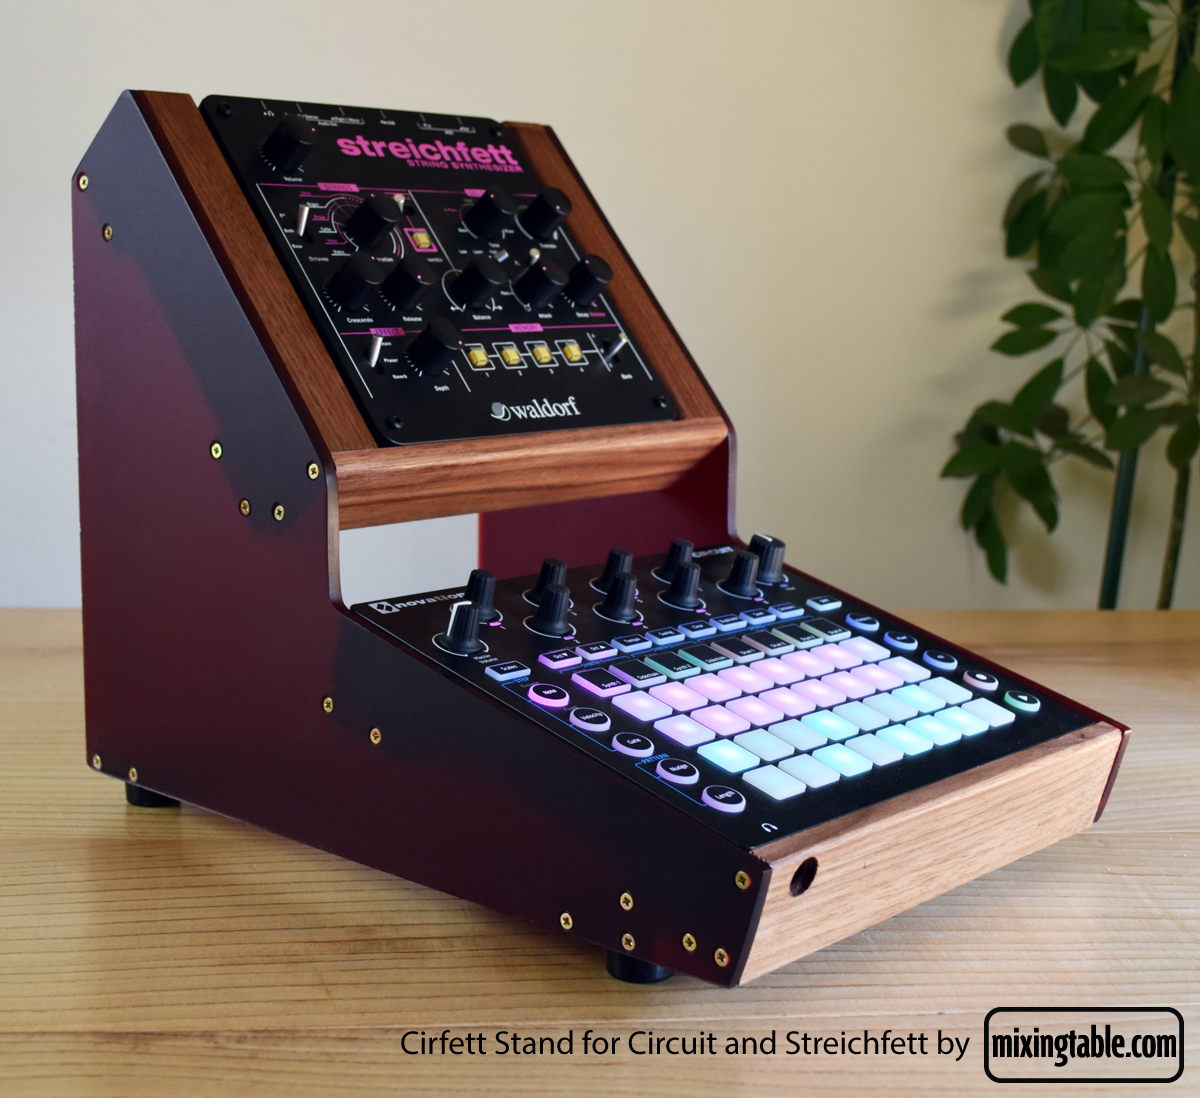 cirfett-stand-by-mixingtable-3